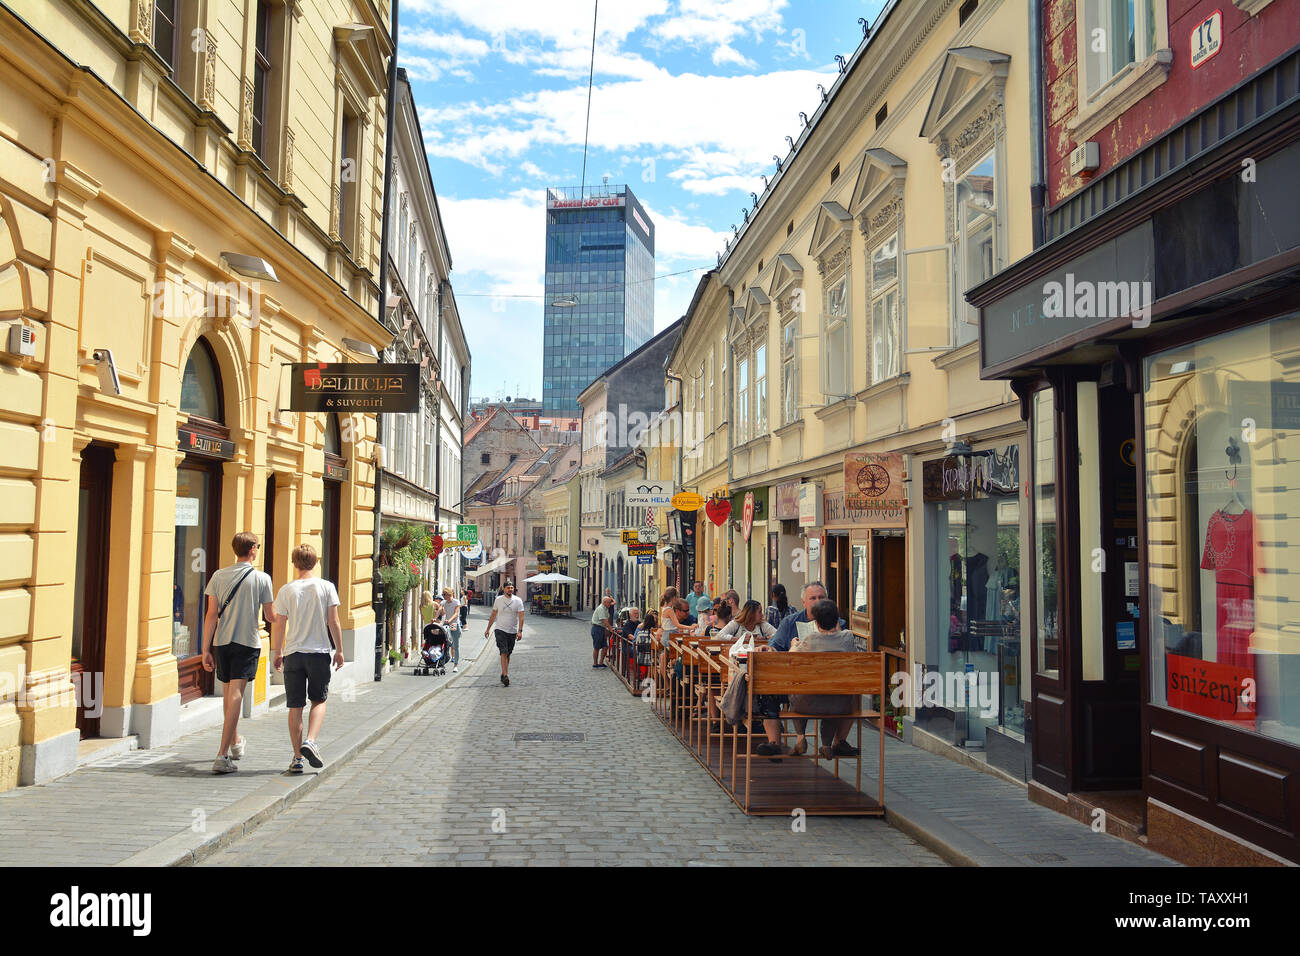 Zagreb Croatia July 15 2017 Radiceva Street View In Old Town Of Zagreb With Zagreb 360 Cafe And Observation Deck Croatia Stock Photo Alamy